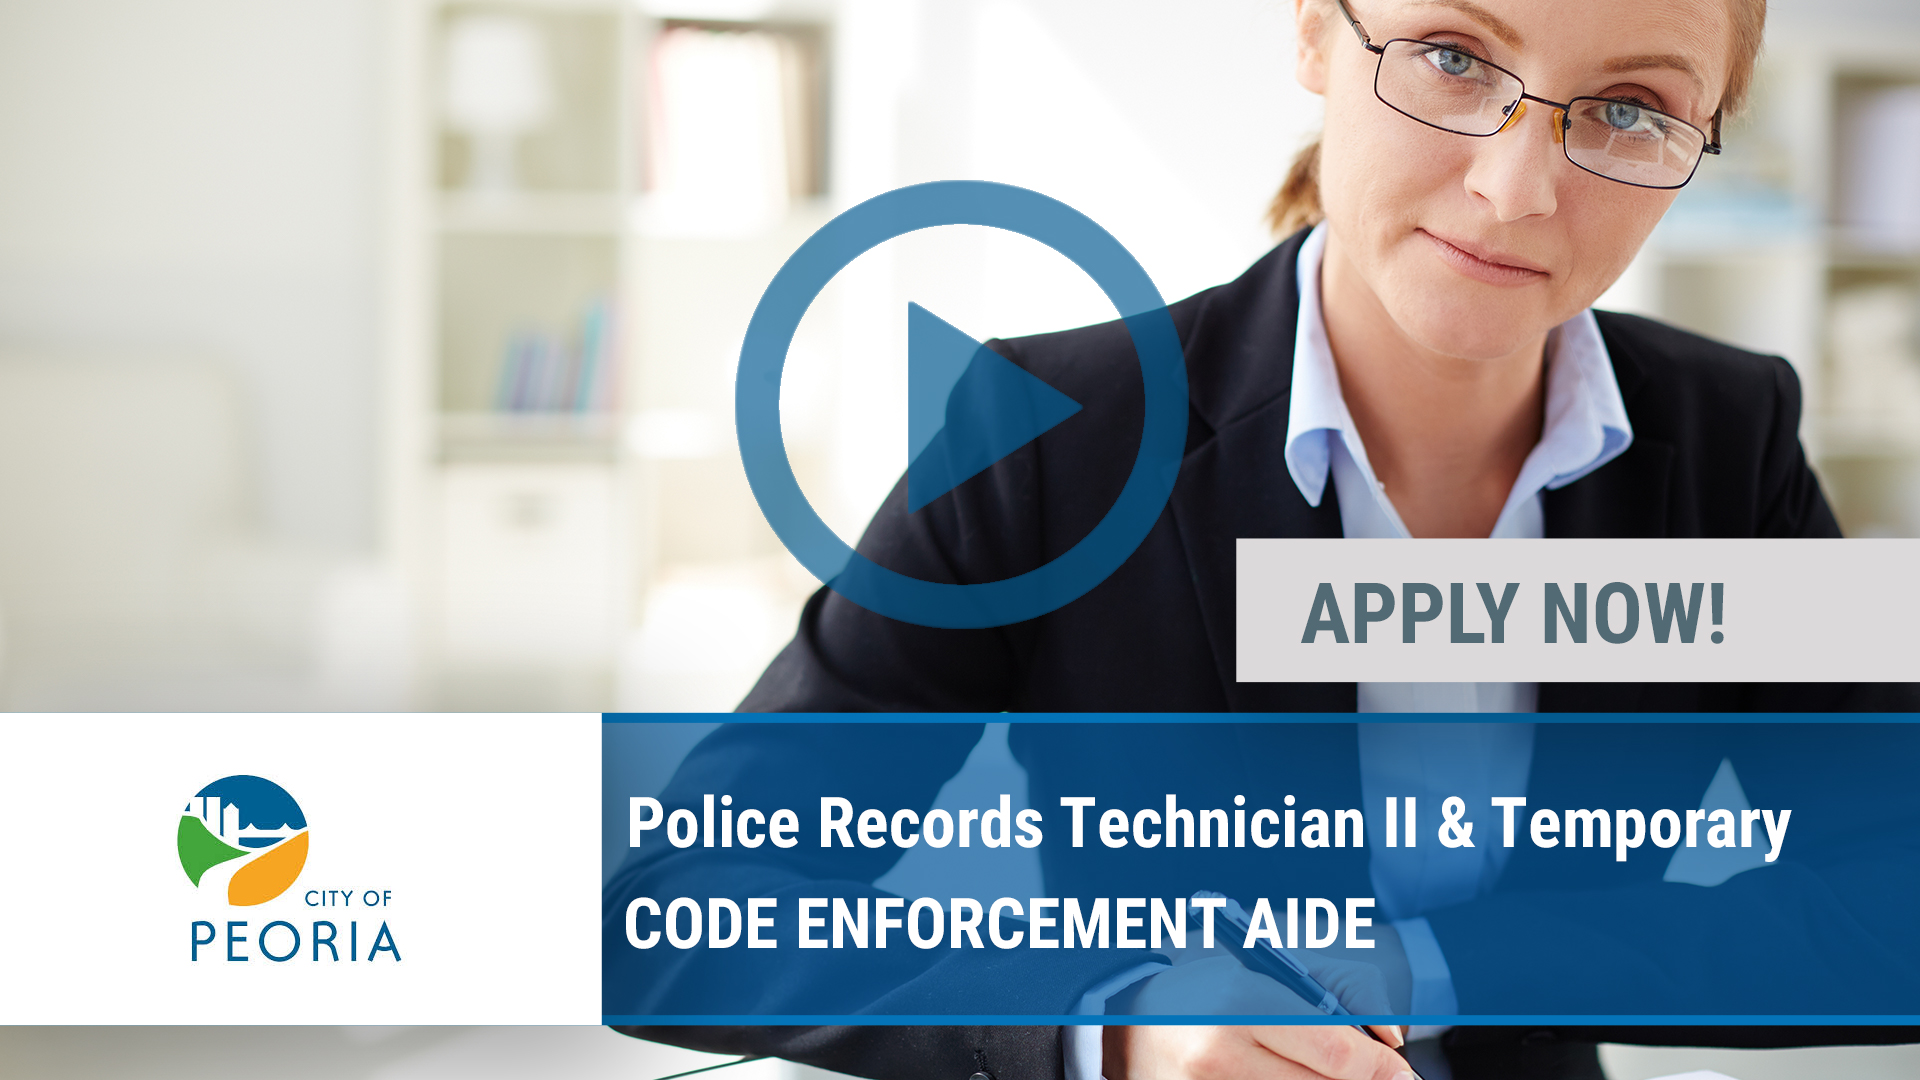 Watch our careers video for available job opening Police Records Technician II & Temporary CODE ENF in Peoria, IL